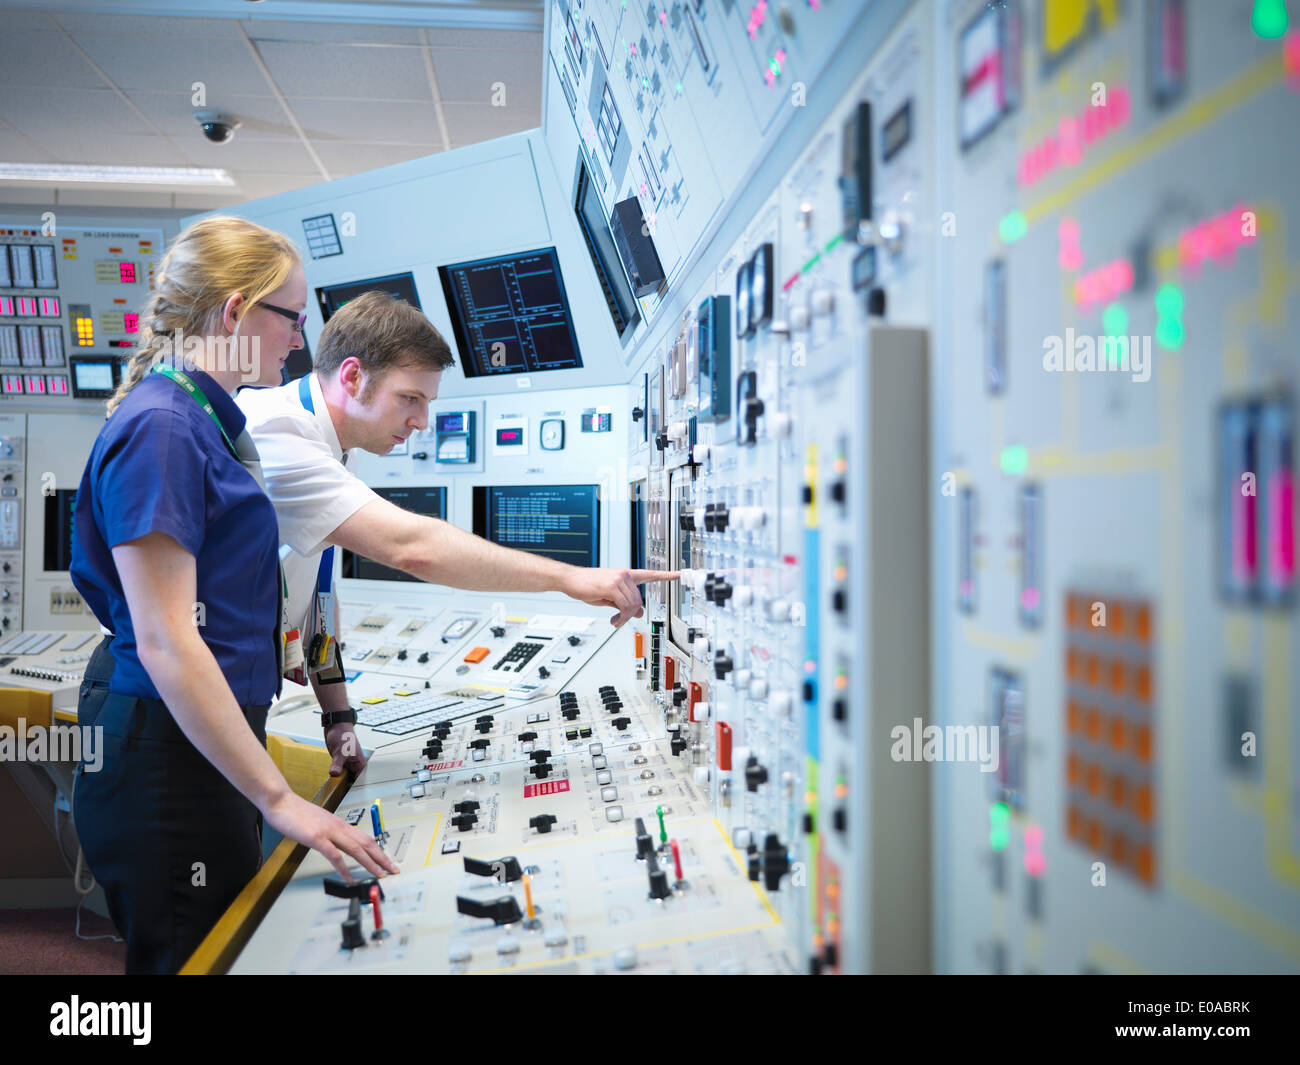 Female operator and trainee in nuclear power station control room simulator - Stock Image